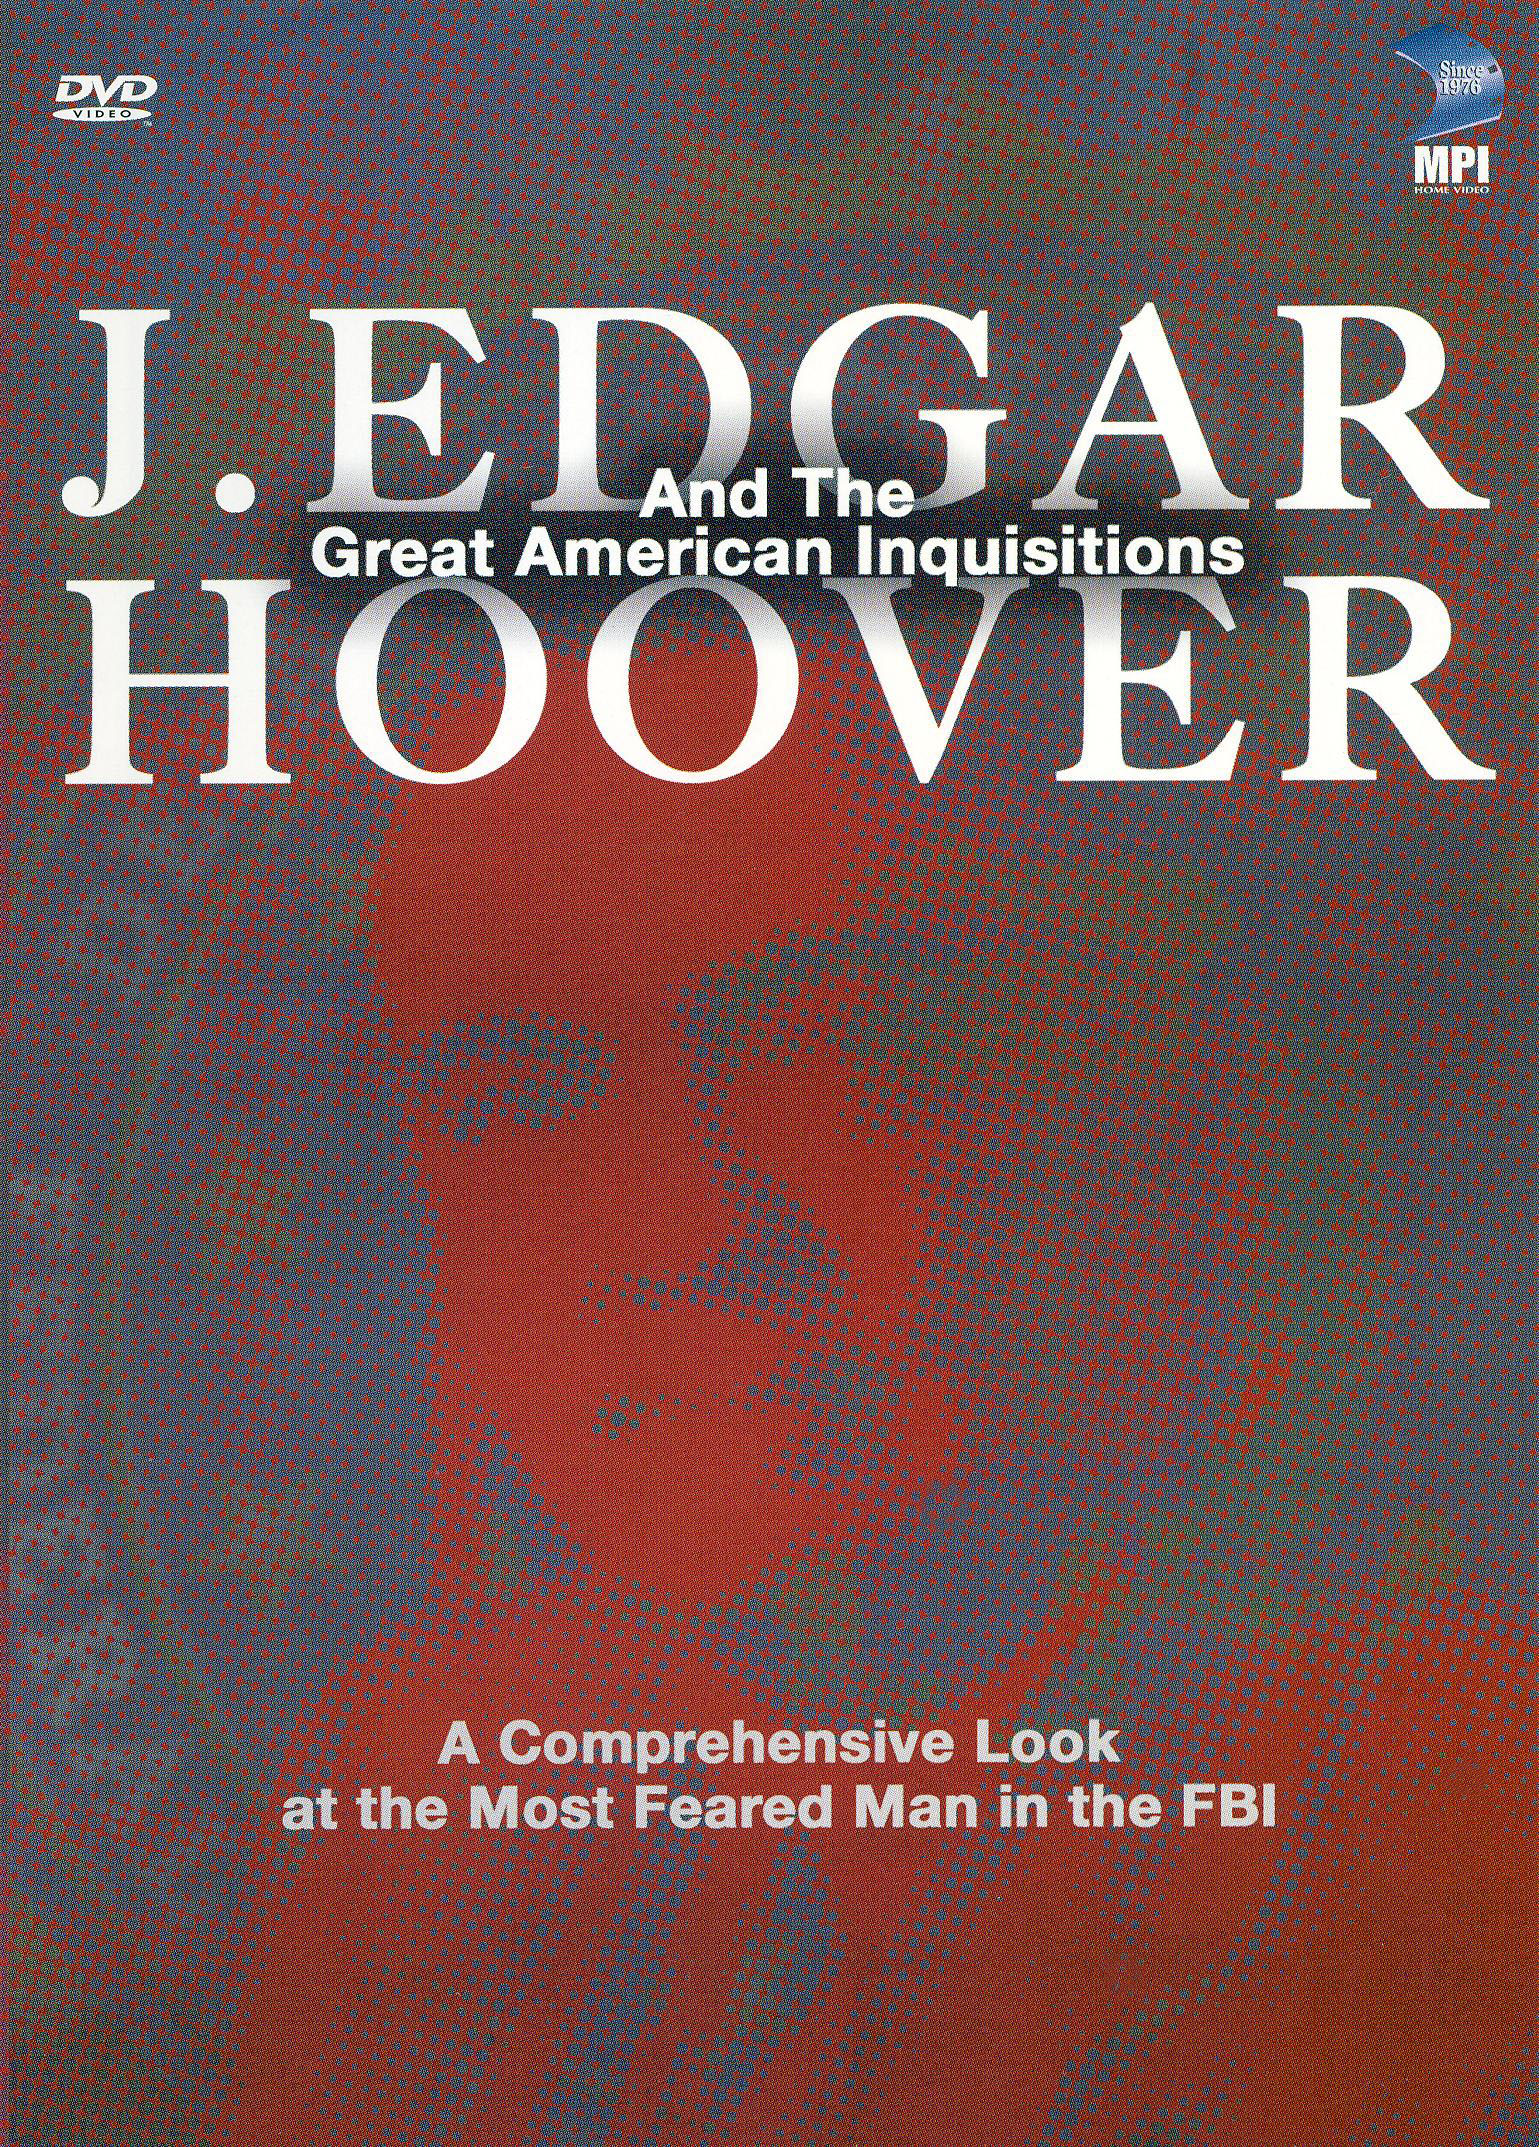 J. Edgar Hoover and the Great American Inquisitions